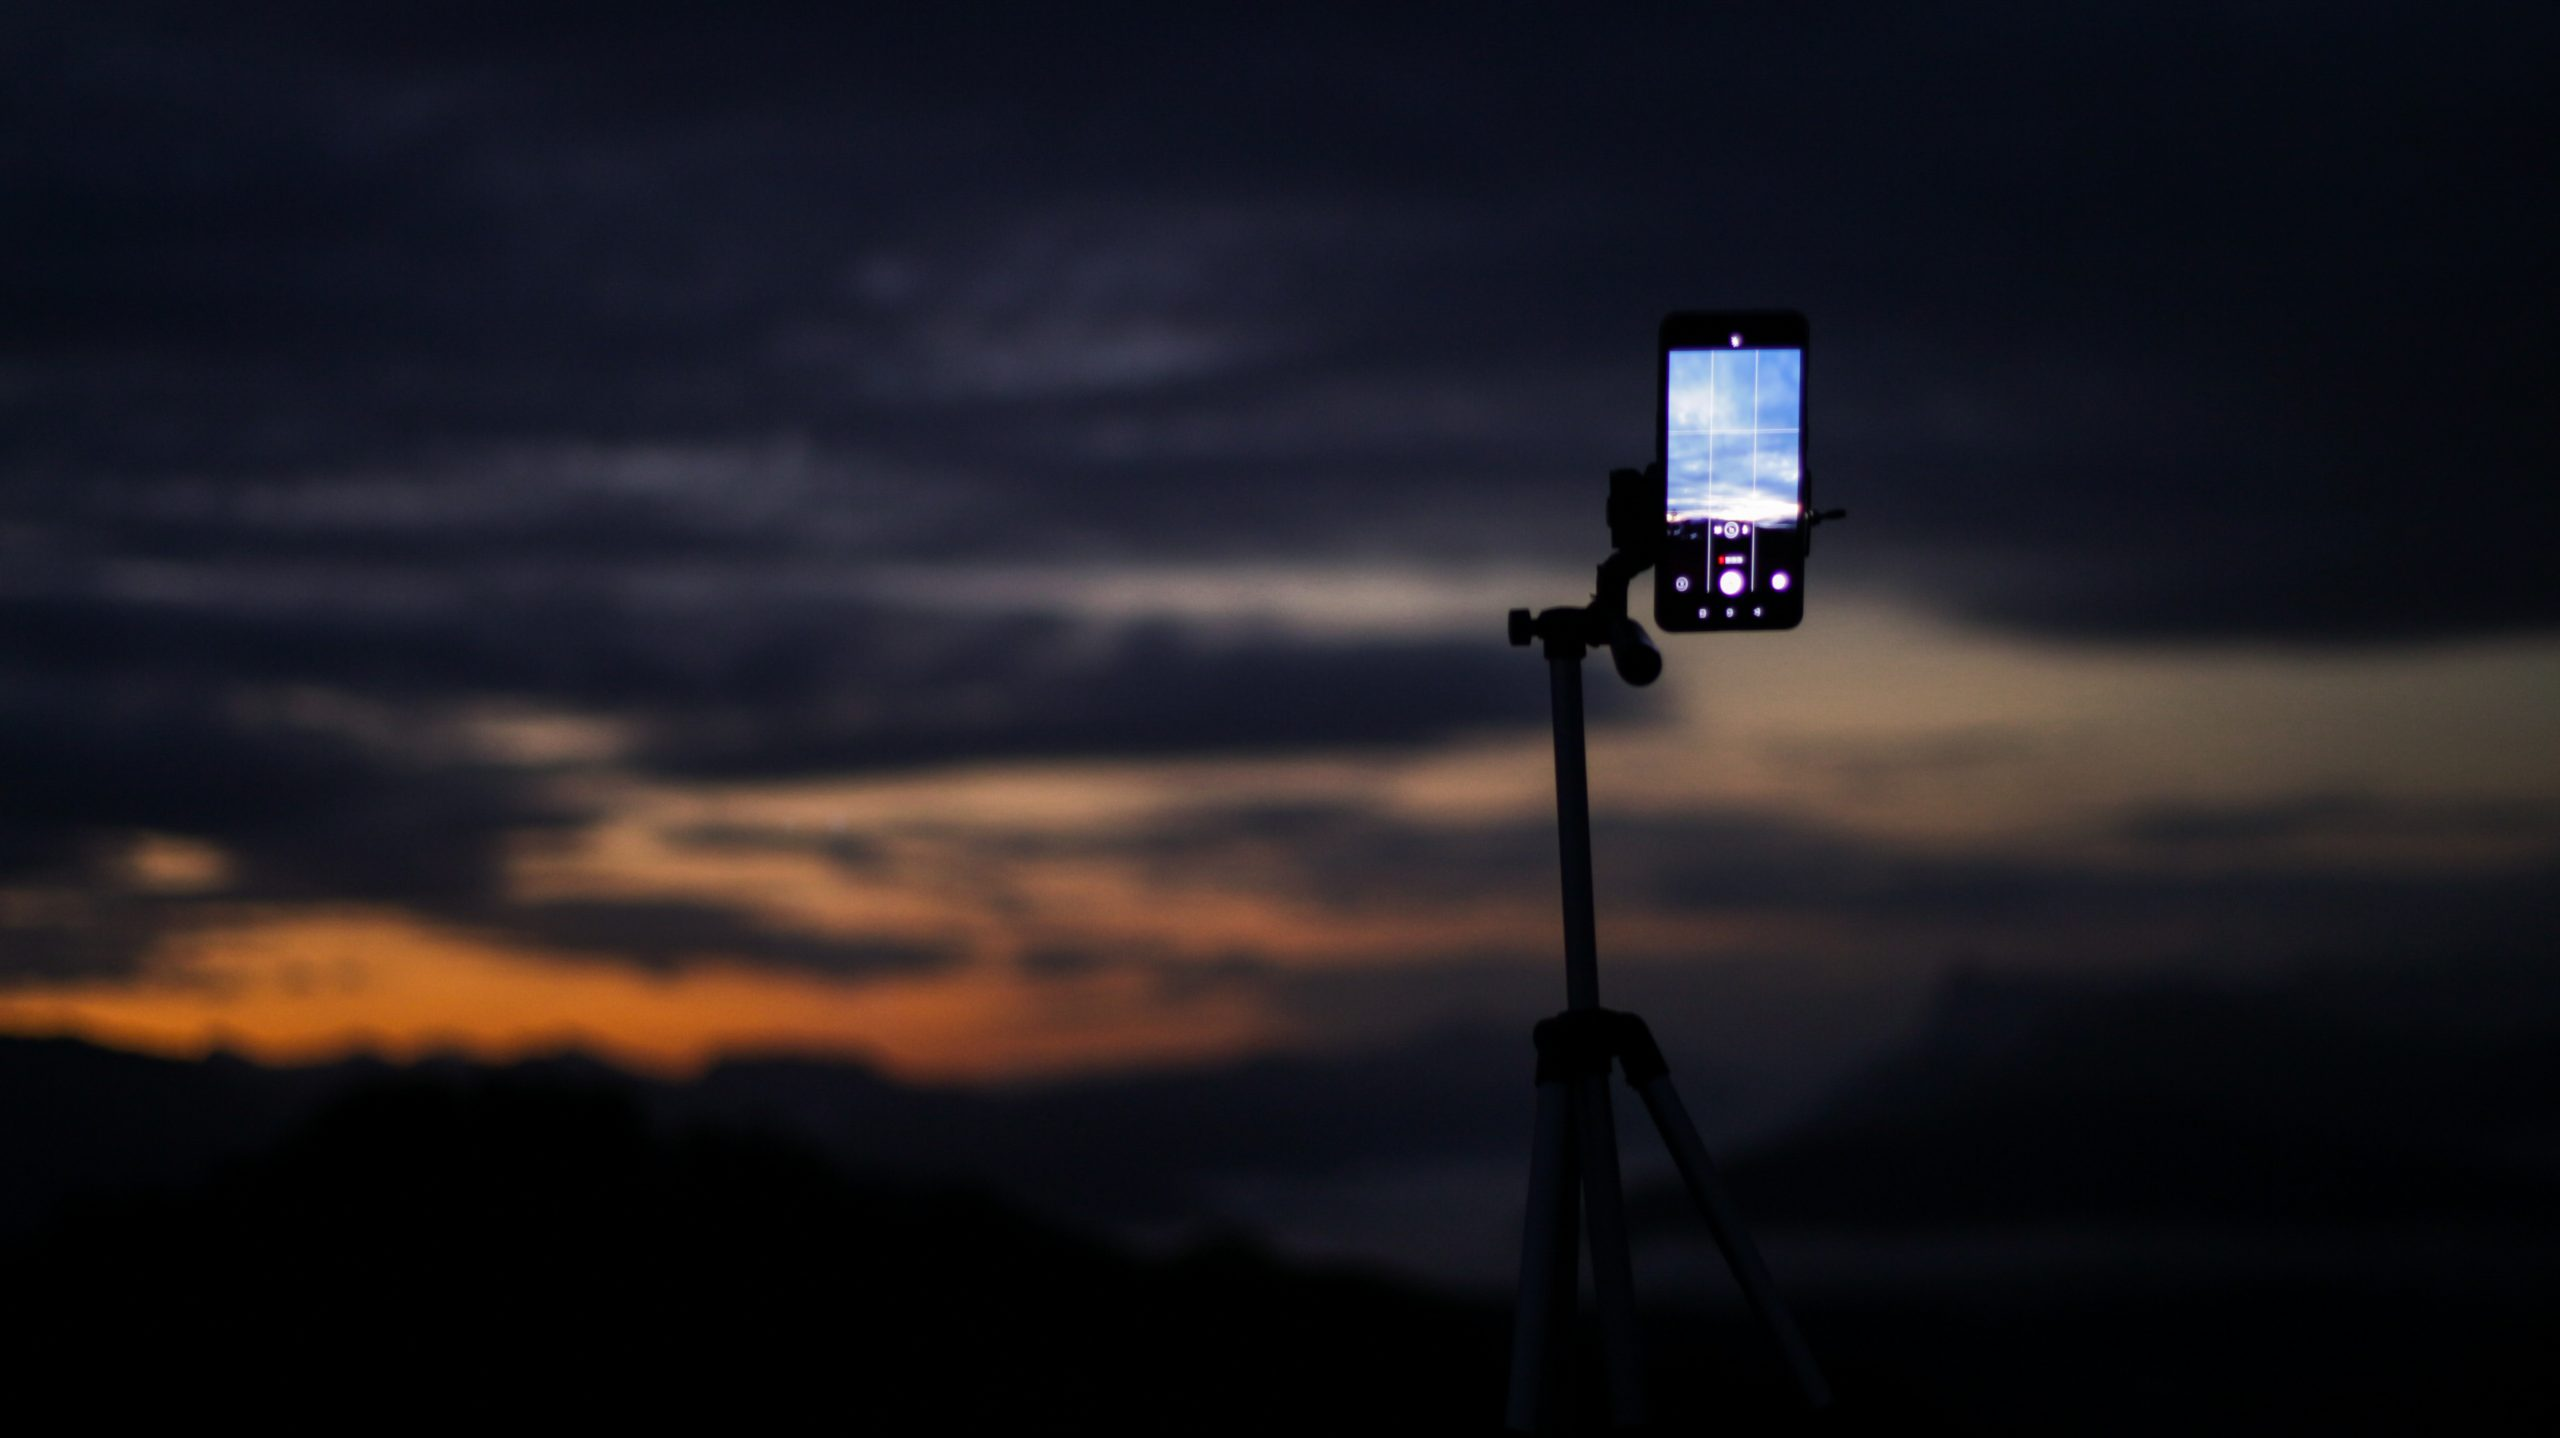 Cloud Taking Photo on a Smartphone